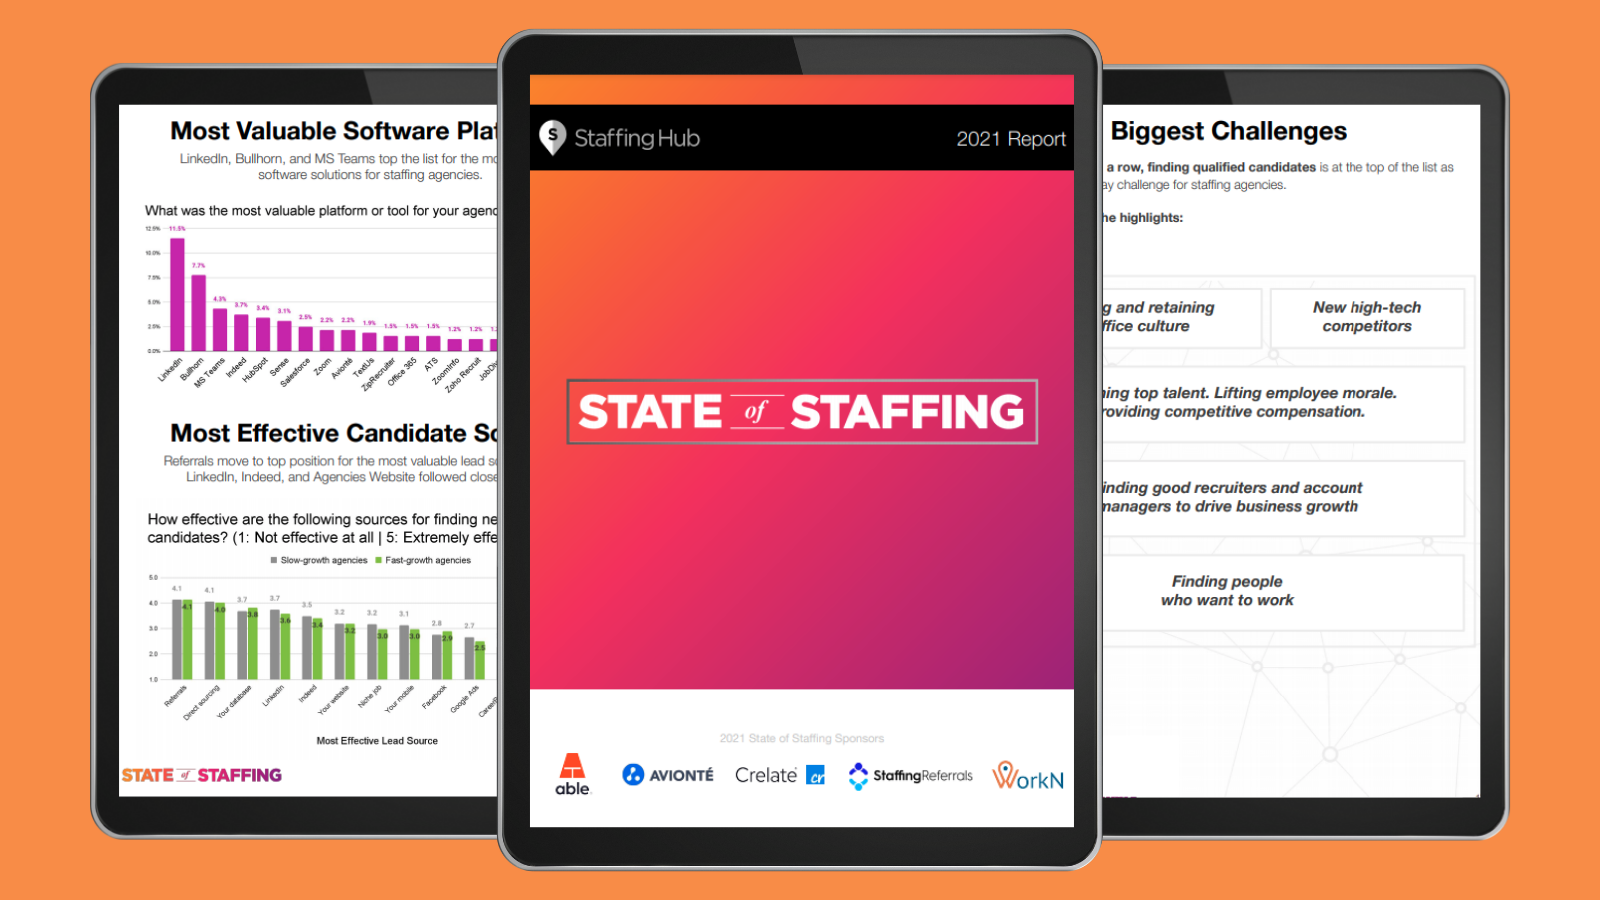 Staffing Industry's Top 10 Challenges And How to Solve Them